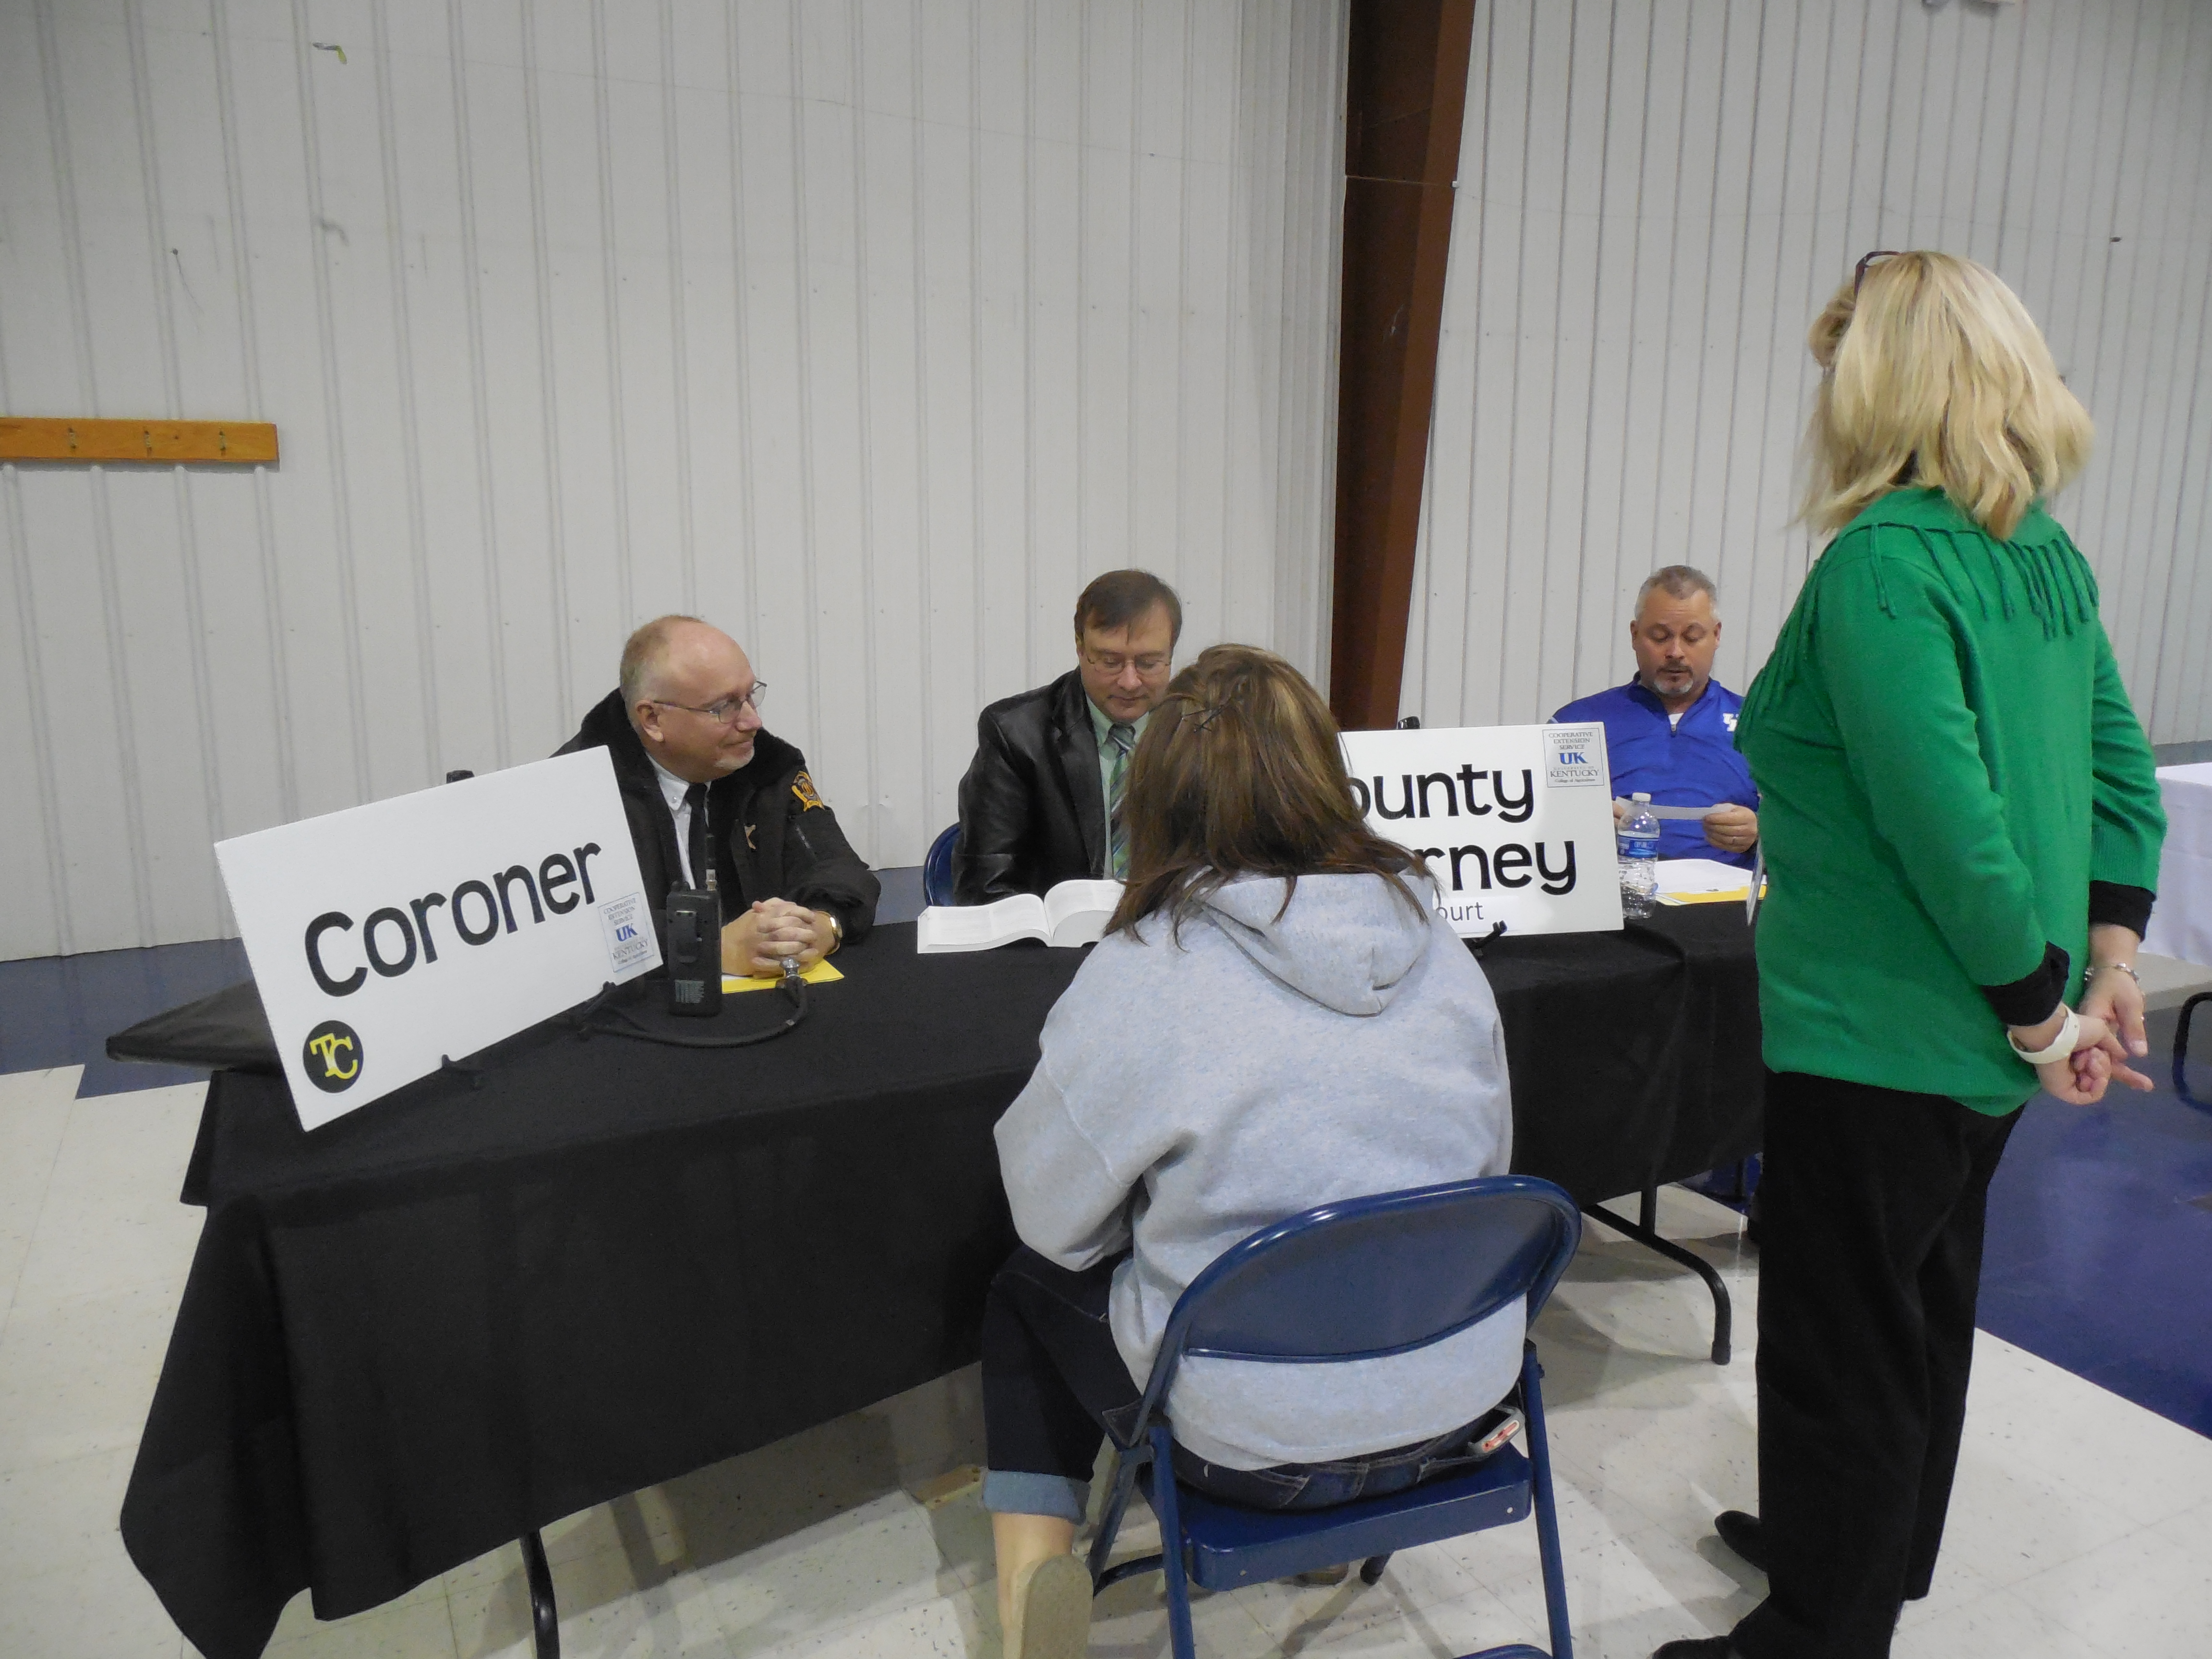 Freshman students at Clinton County High School participated in the Truth and Consequences event on Friday, March 17th.